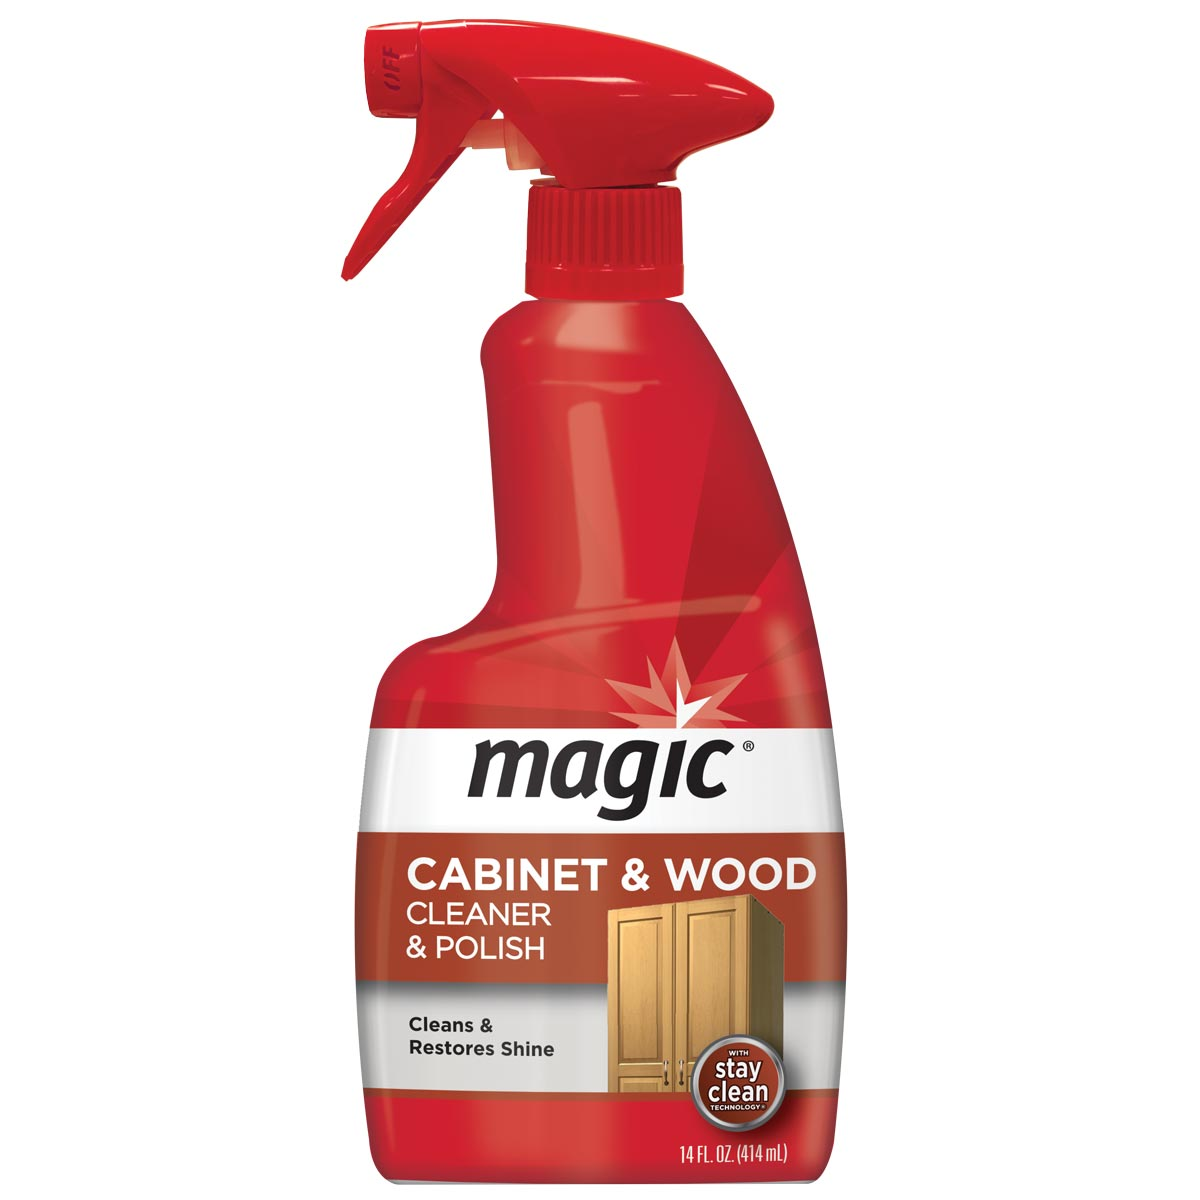 Cabinet cleaner